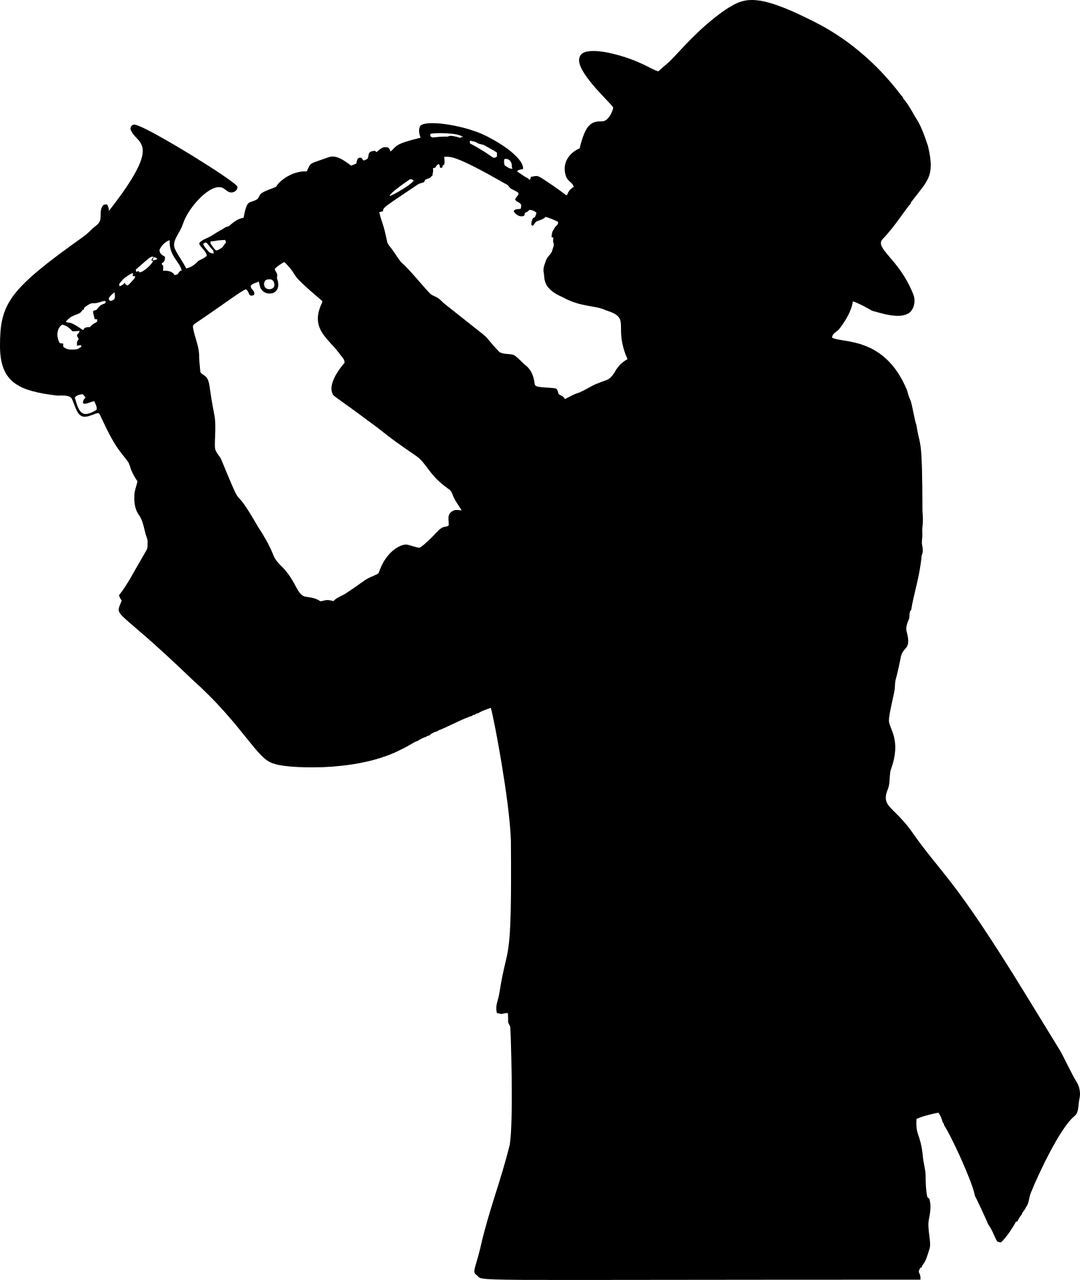 Famous Musician Silhouette